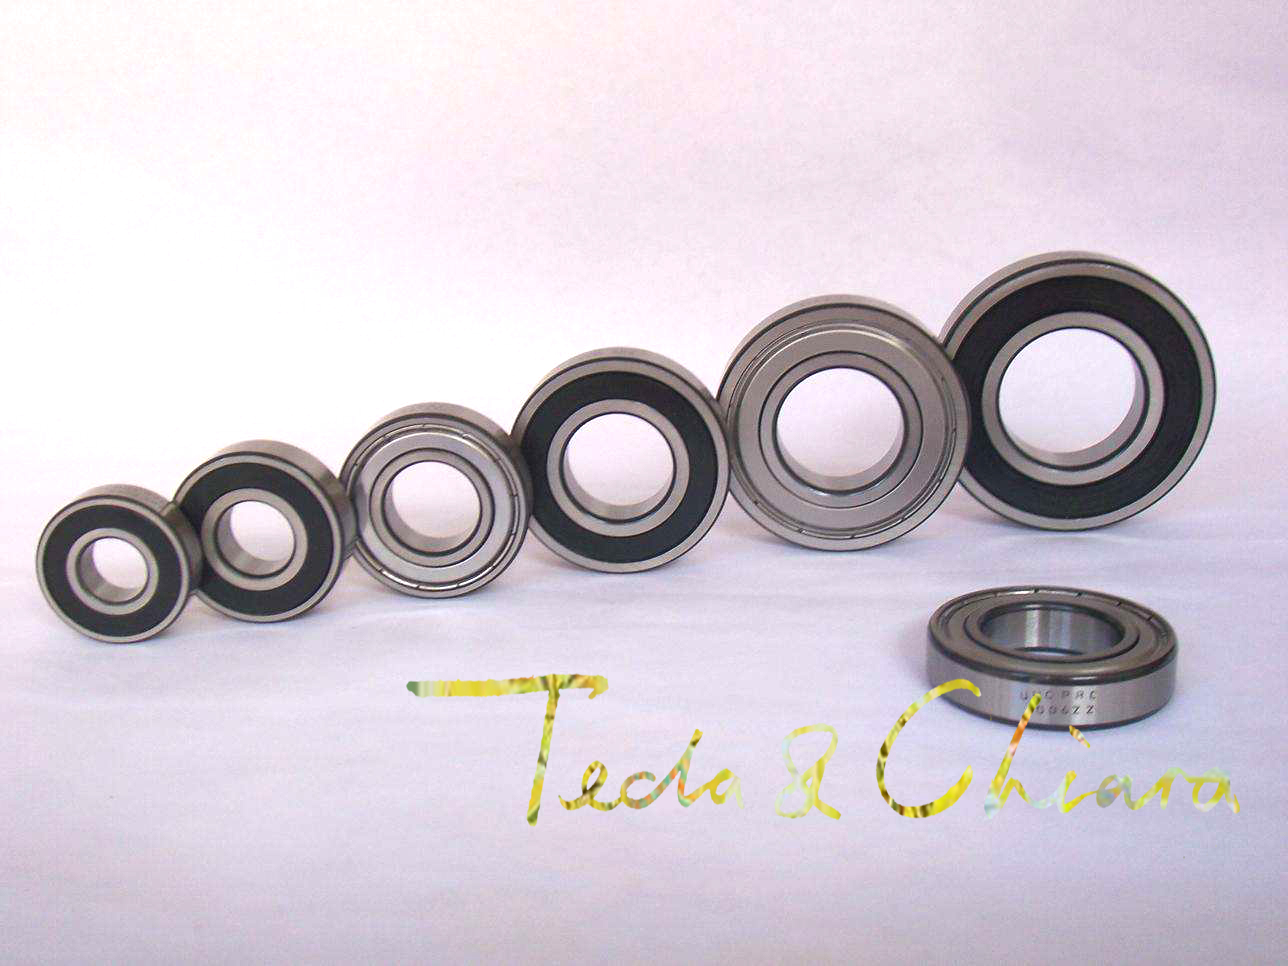 604 604ZZ 604RS 604-2Z 604Z 604-2RS ZZ RS RZ 2RZ Deep Groove Ball Bearings 4 x 12 x 4mm High Quality 6704 6704zz 6704rs 6704 2z 6704z 6704 2rs zz rs rz 2rz deep groove ball bearings 20 x 27 x 4mm high quality